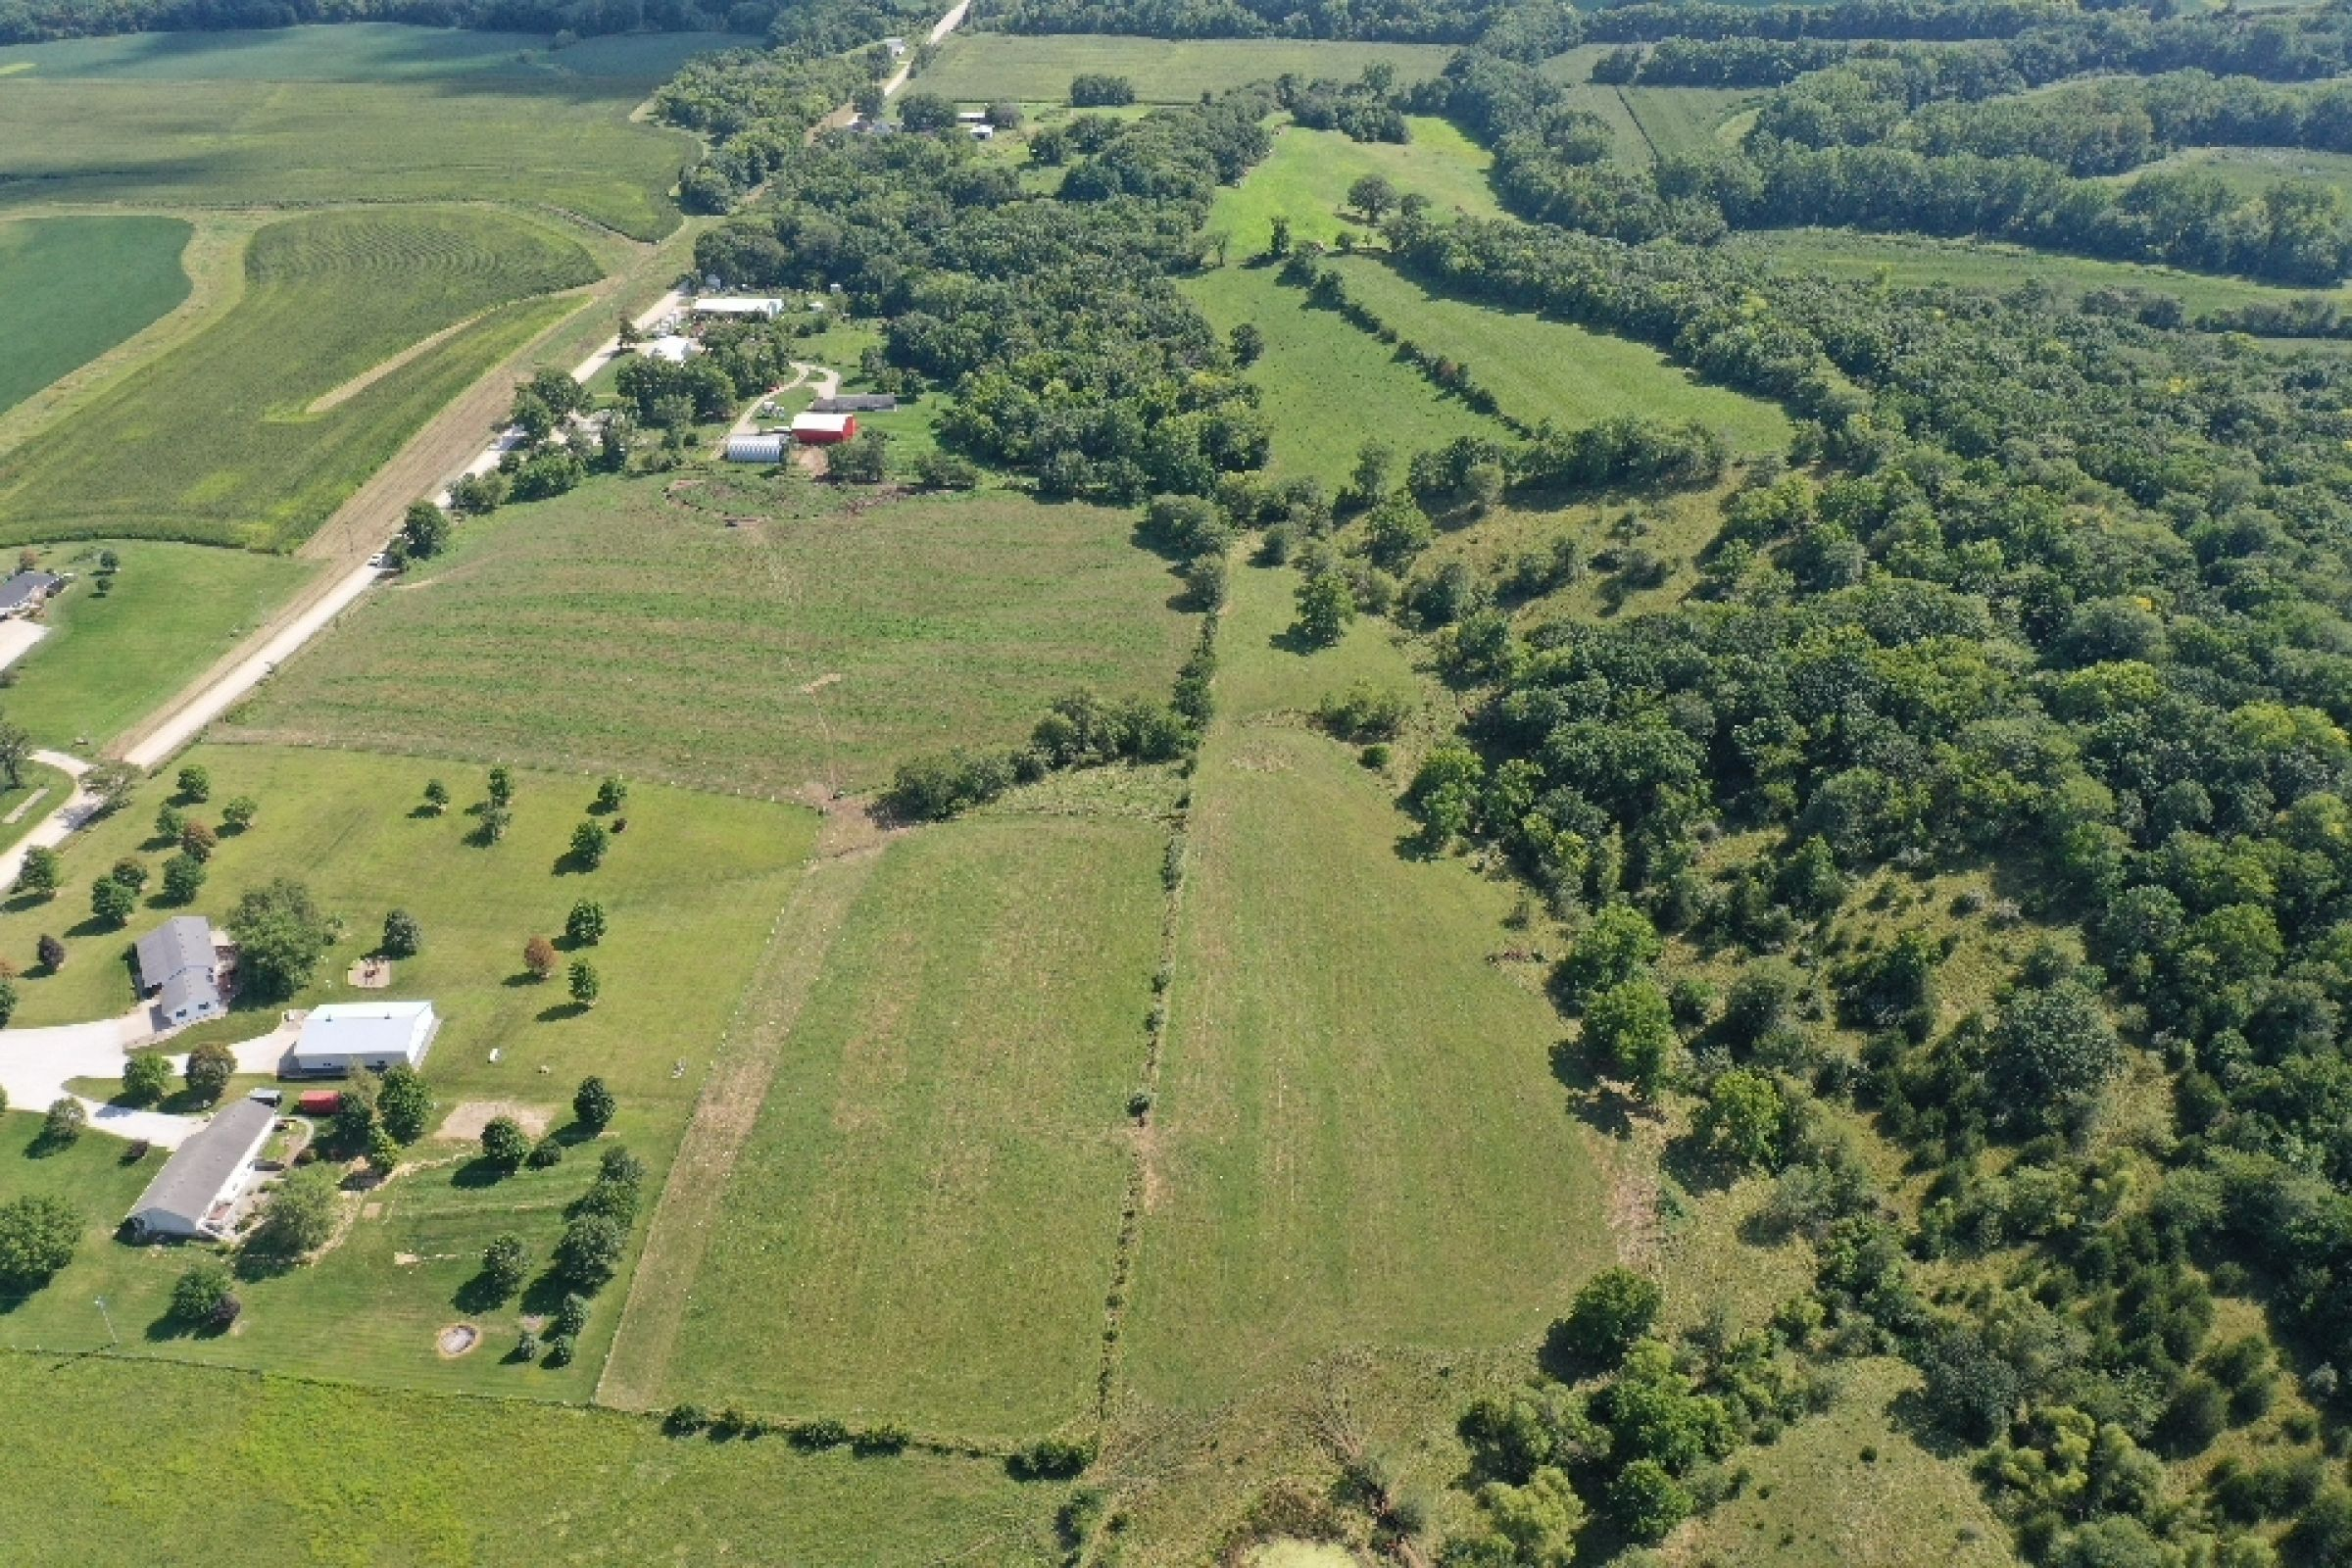 land-warren-county-iowa-19-acres-listing-number-15119-7-2020-08-20-183142.jpg